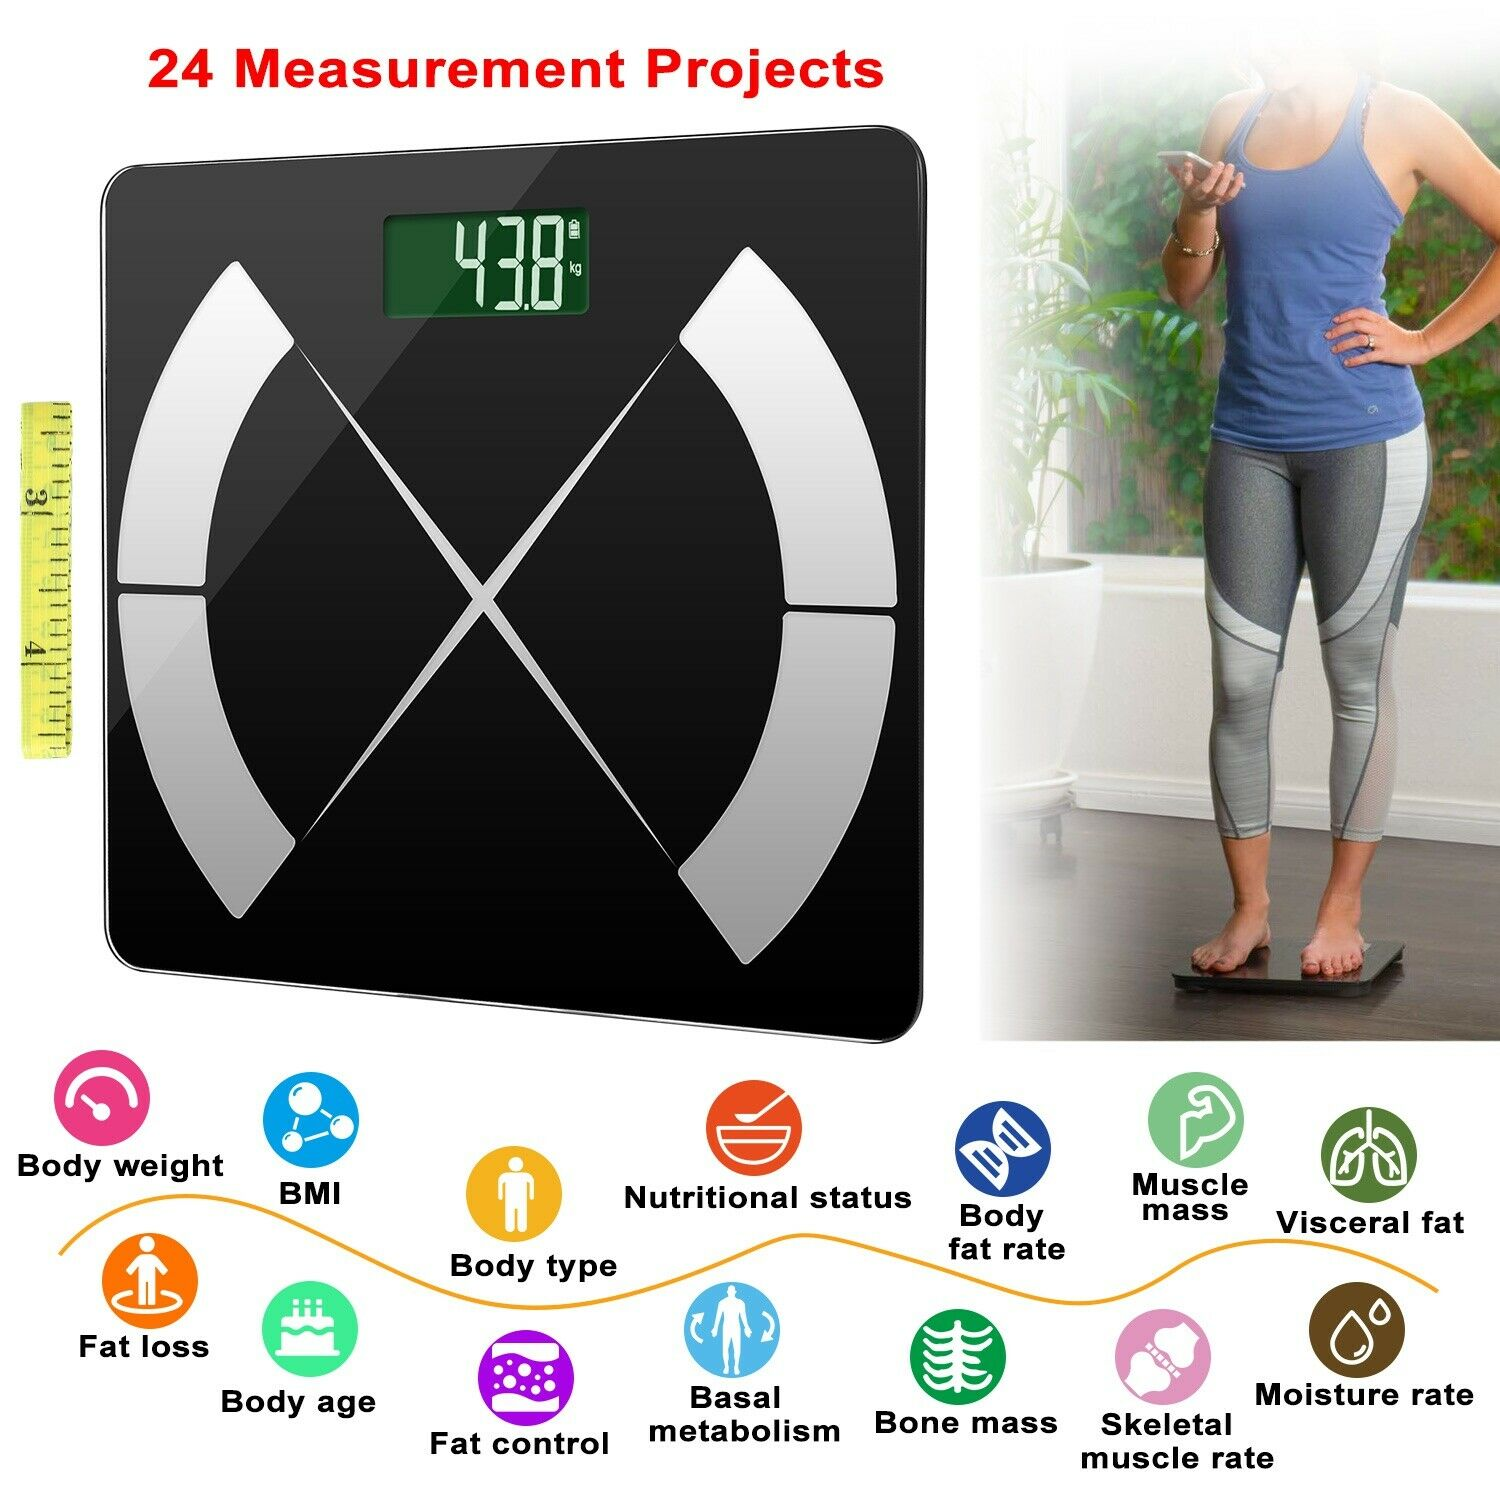 Bathroom Smart Scale For Body Fat, Bones, and BMI with Digital iOS Android App